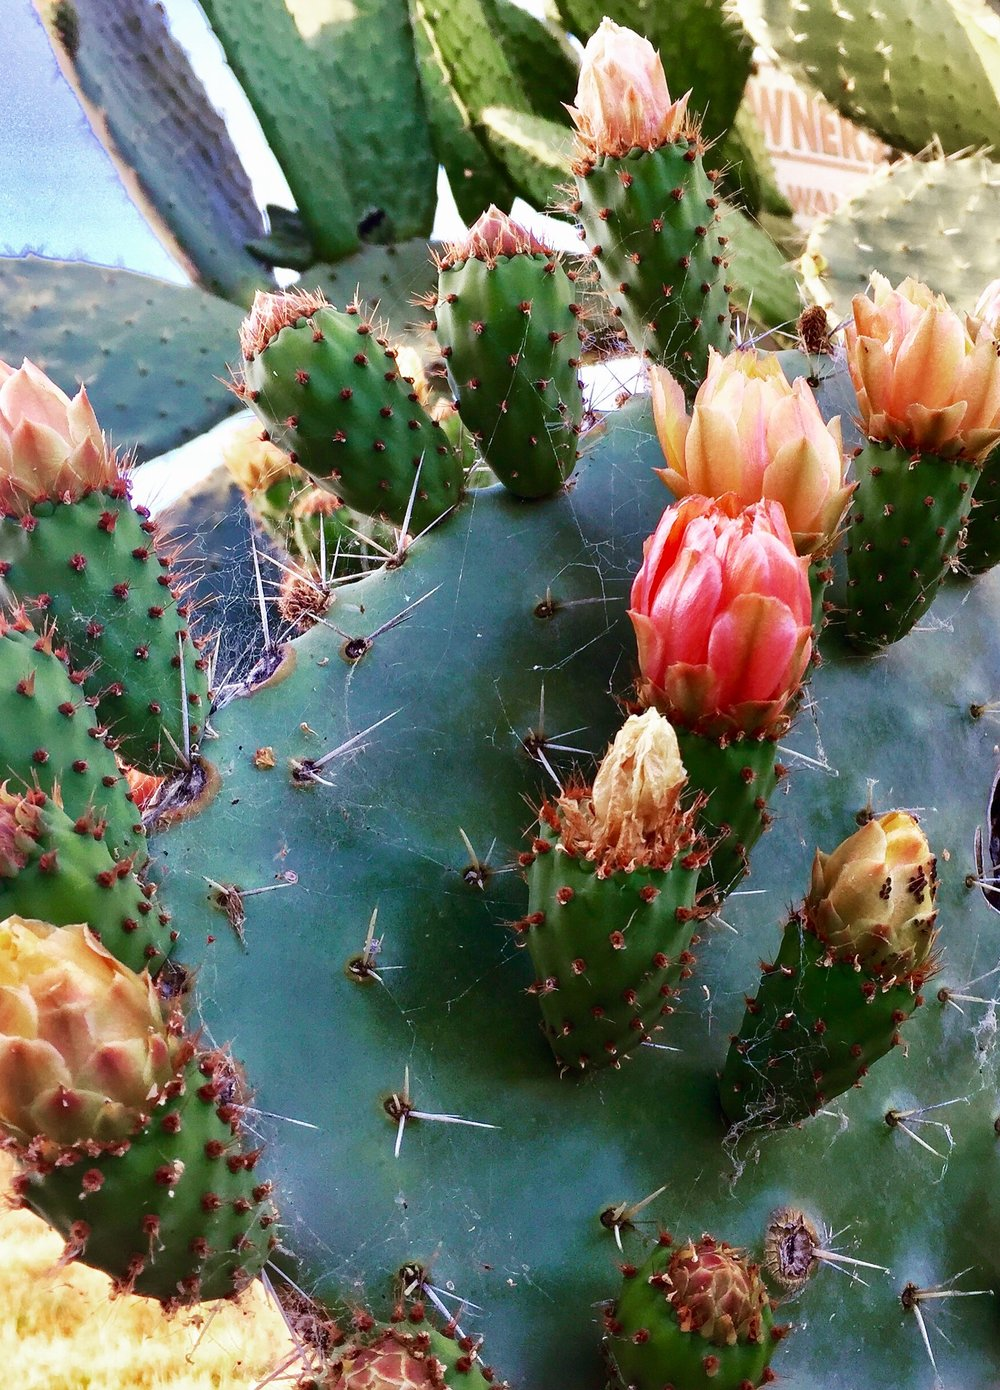 Blossoms from Prickly Pear Cactus